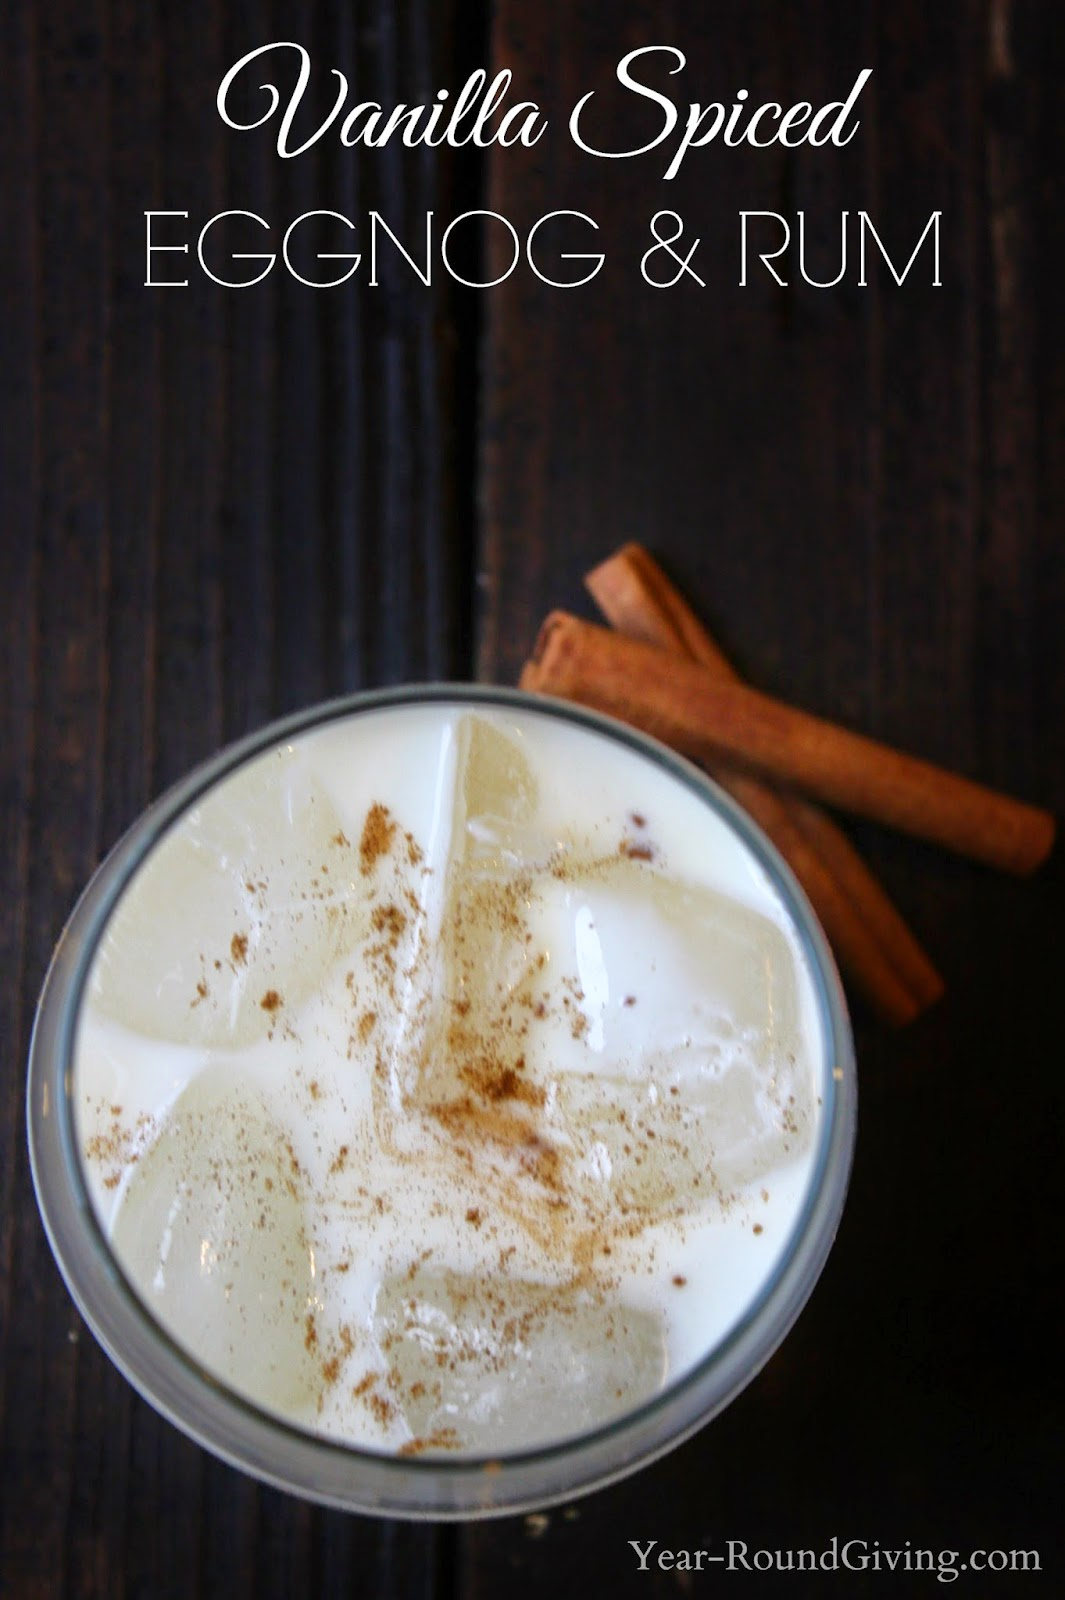 Vanilla Spiced Eggnog and Rum - Holiday Bar Menu Round Up